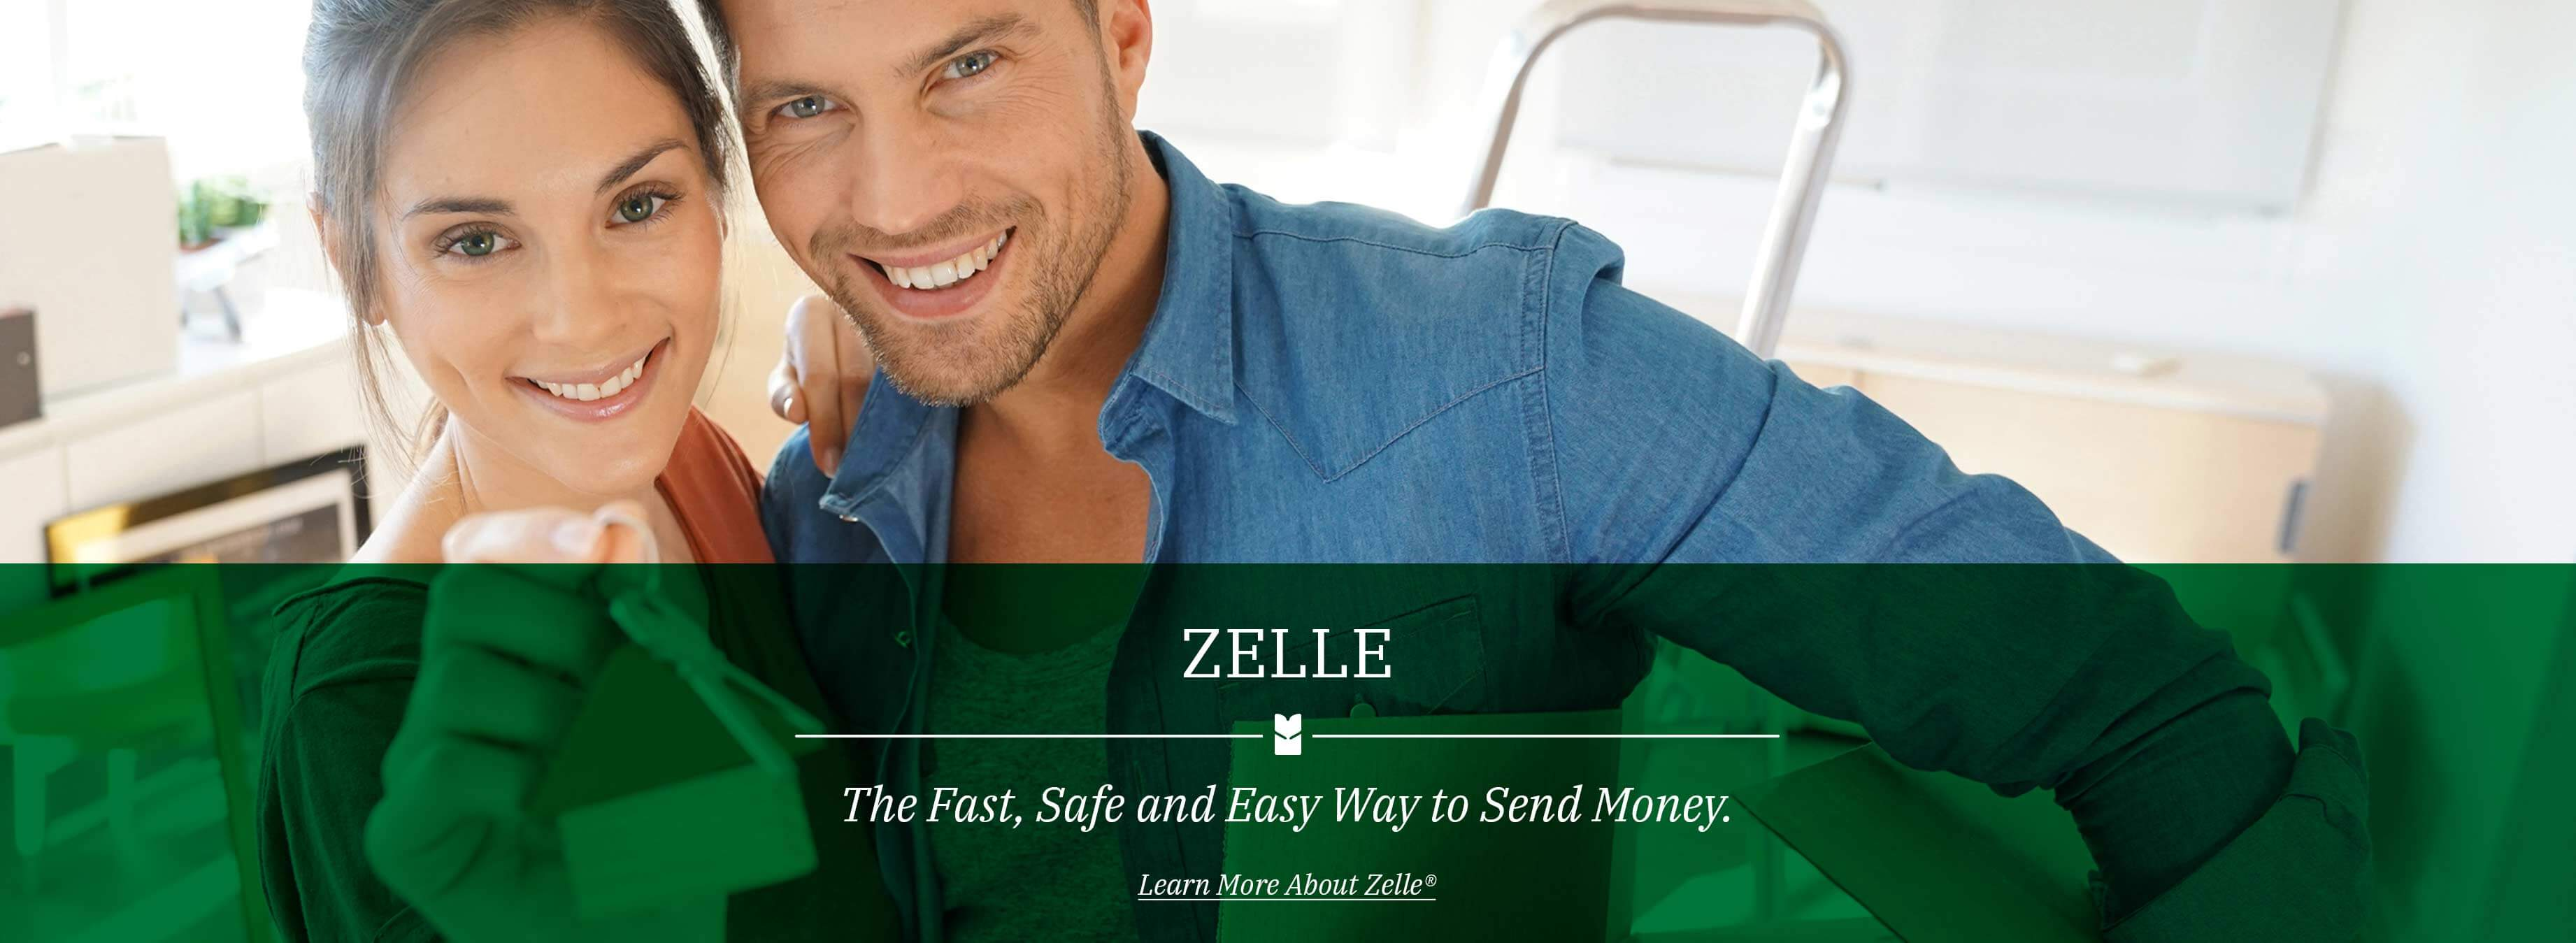 Zelle The Fast, Safe and Easy Way to Send Money.  Learn More About Zelle®